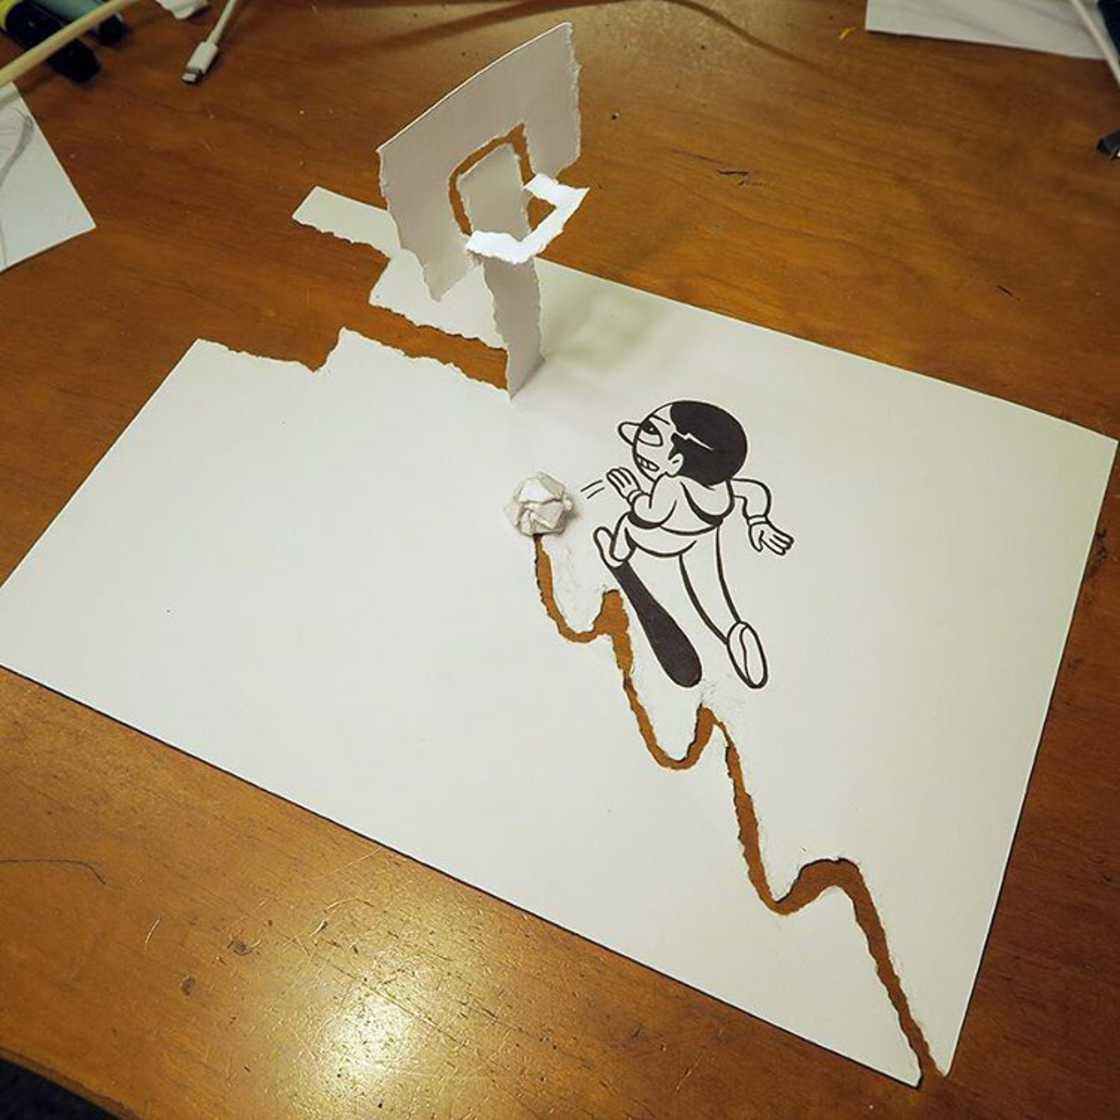 Funny situations created with simple sheets of paper